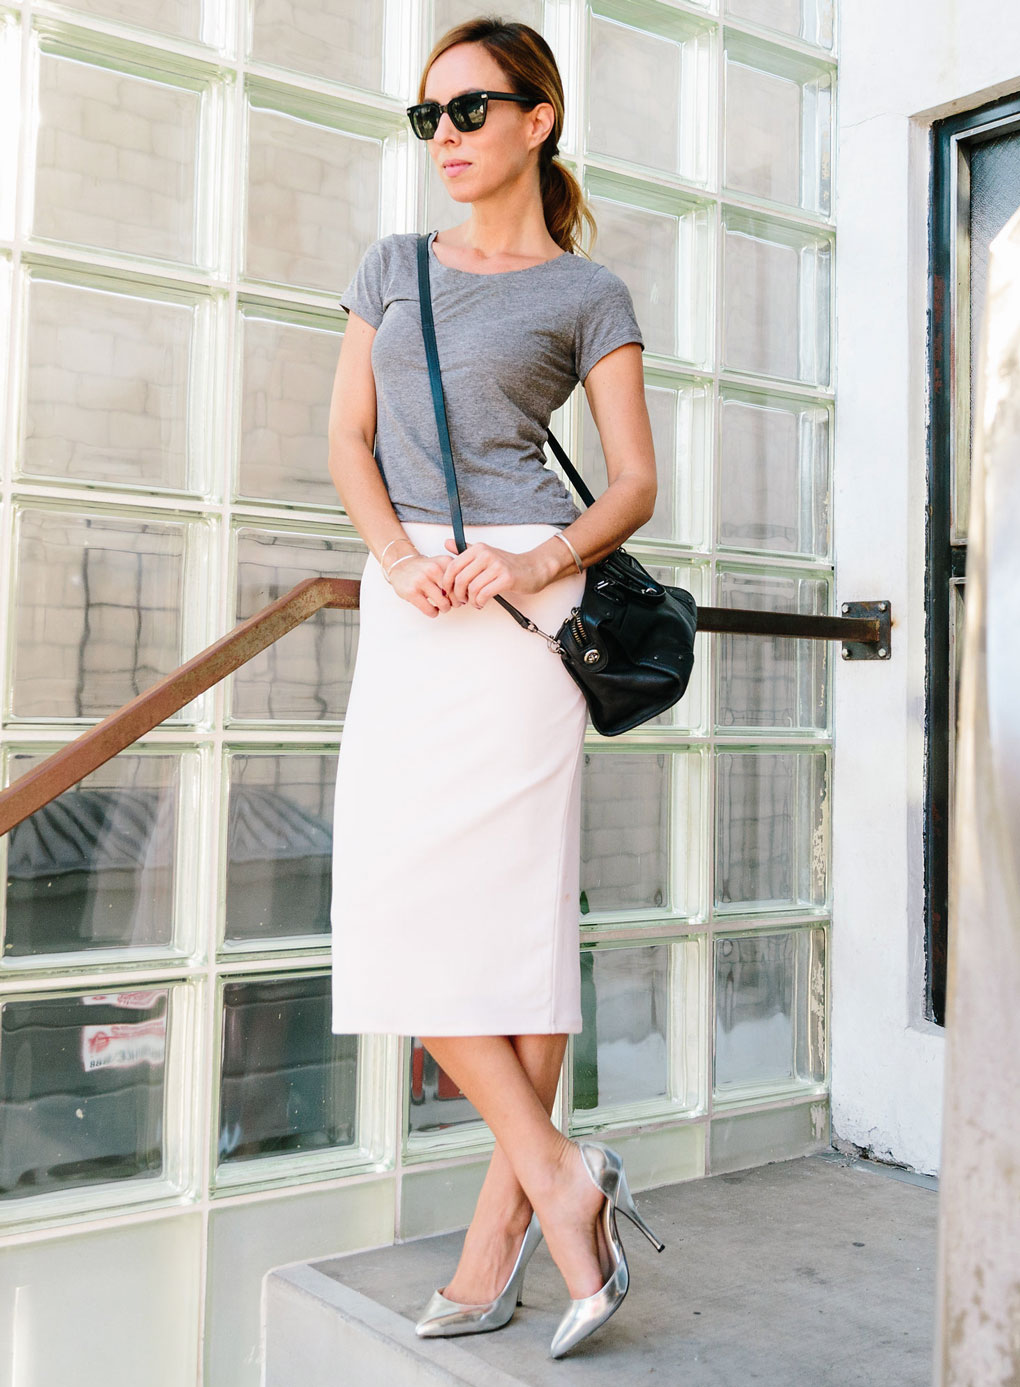 Sydne Style - People StyleWatch contributor Sydne Summer shows how to style Kendall Jenner's gray t-shirt with a skirt and heels in celebrity fashion.